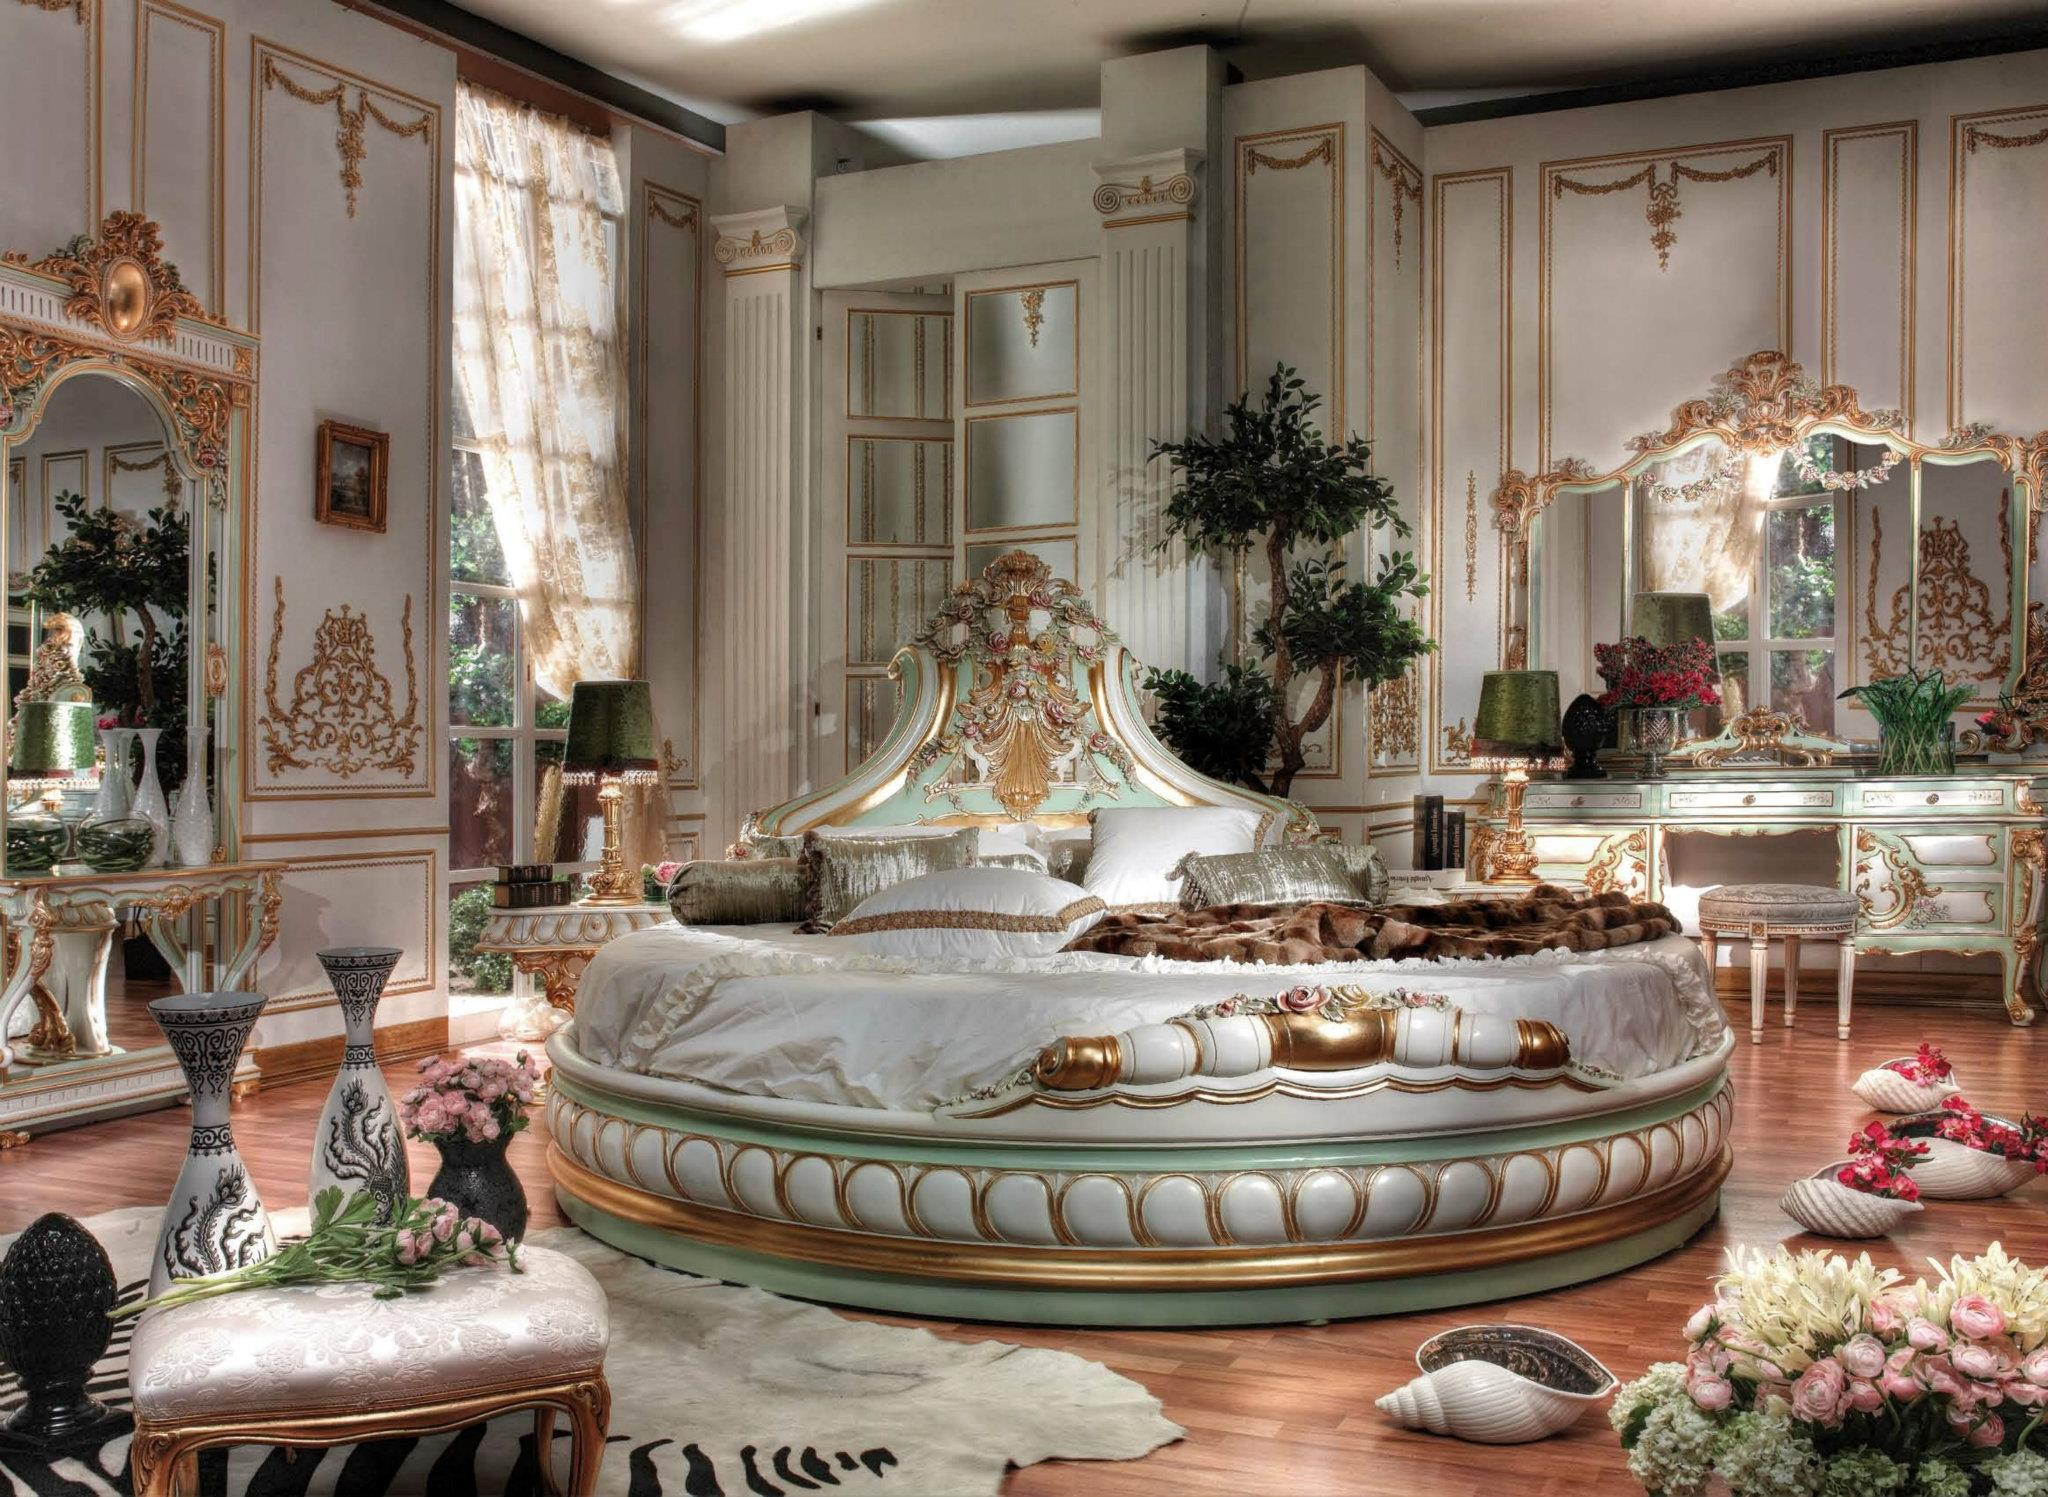 Italian Bedrooms 45 Photos Bedrooms From Italy Models Palazzo Ducale Siena Avorio And Other Furniture Sets